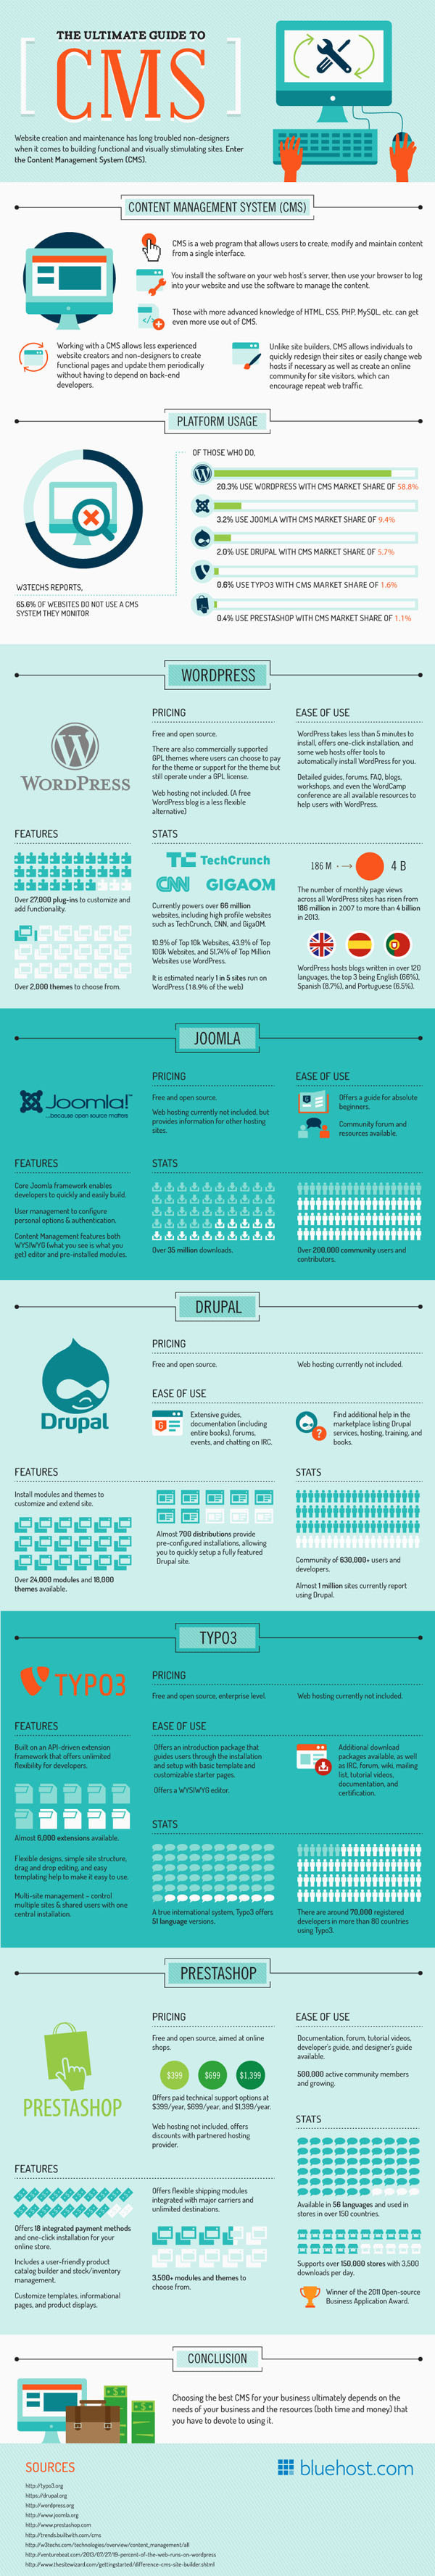 The Ultimate Guide to CMS [Infographic] #cms #infographic #php